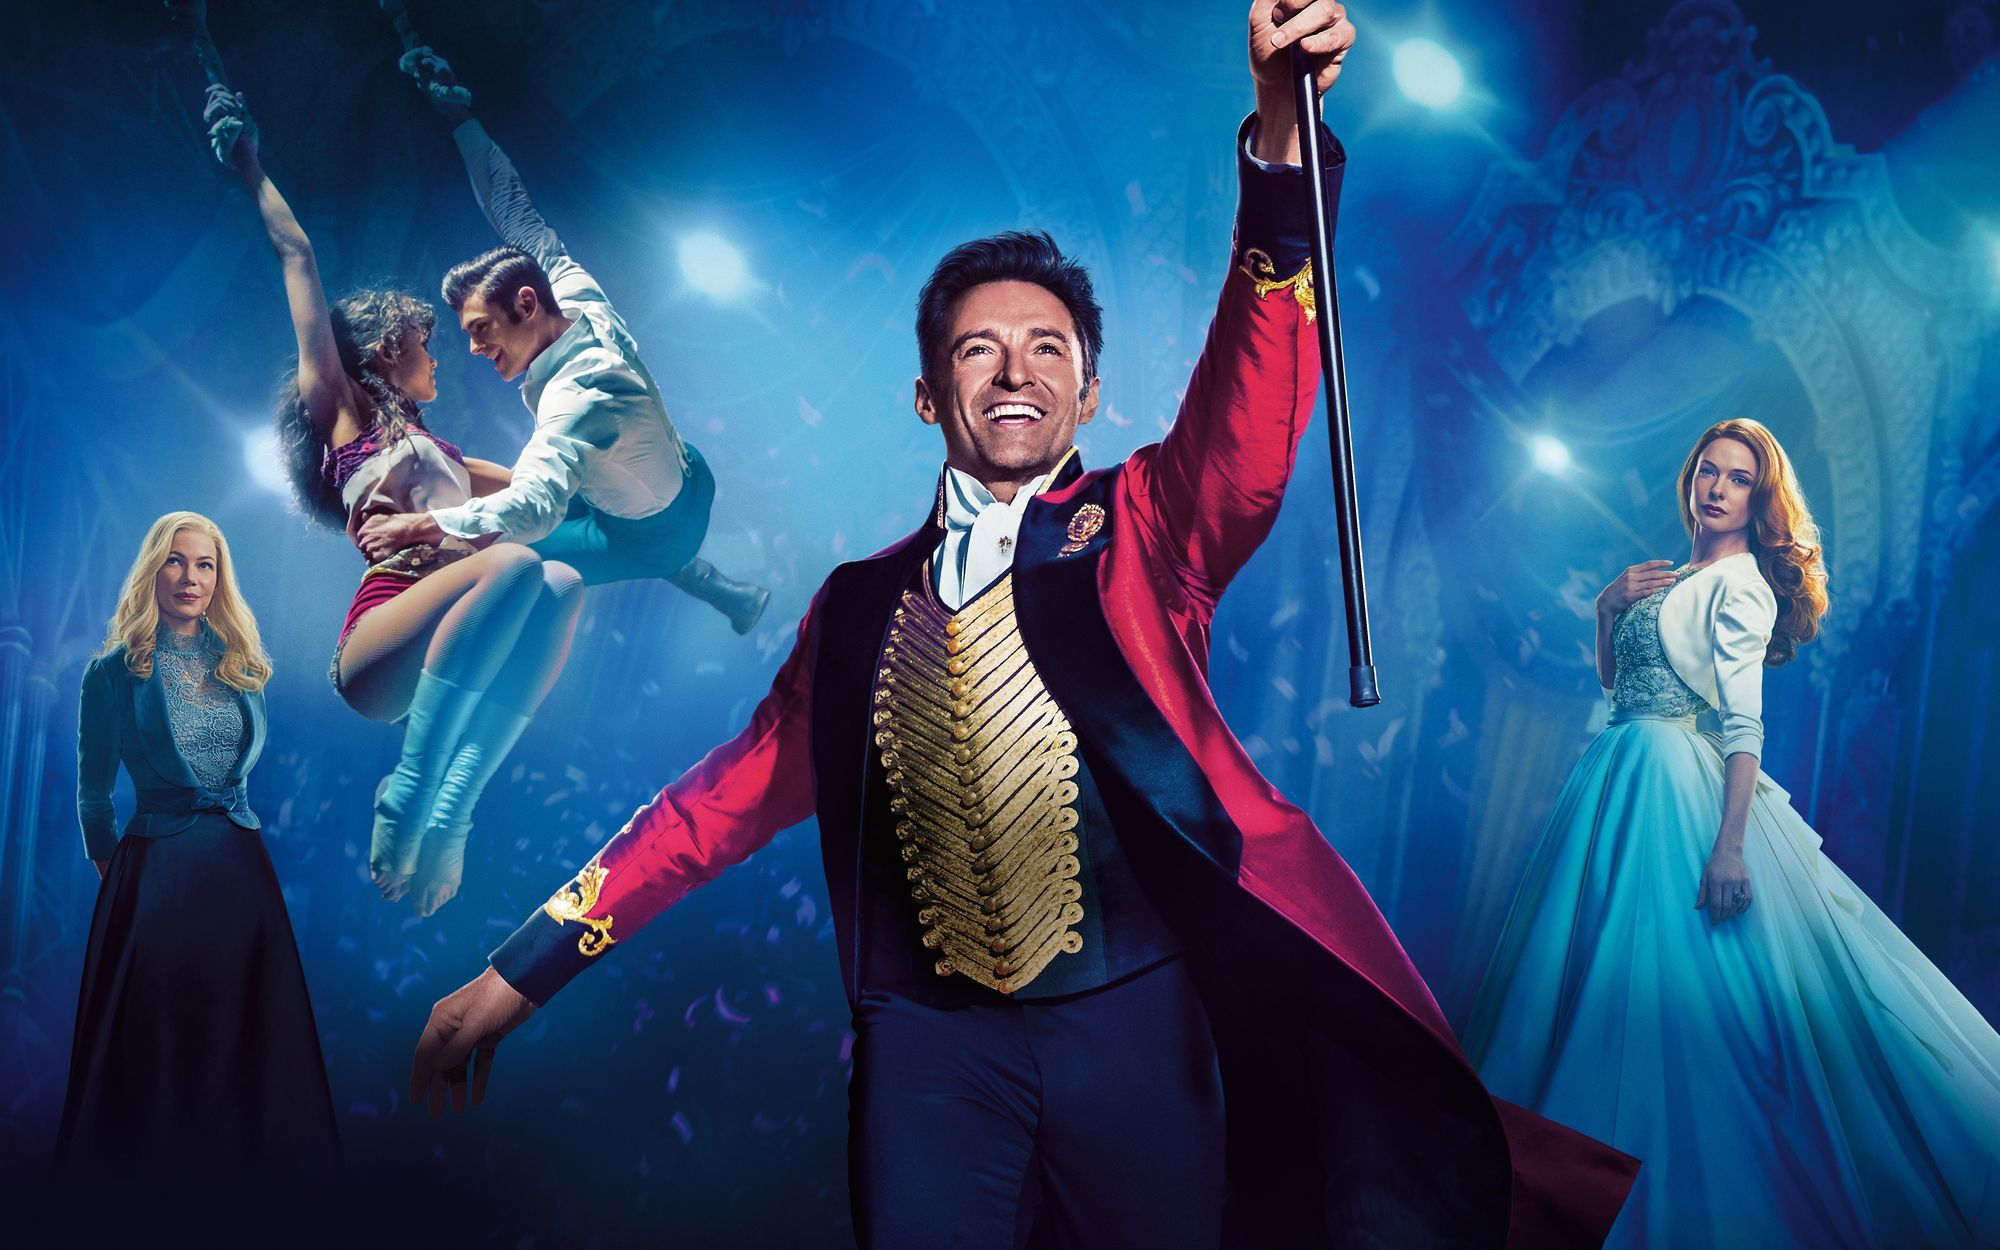 How to Watch The Greatest Showman on Netflix - Top 3 VPN Alternatives